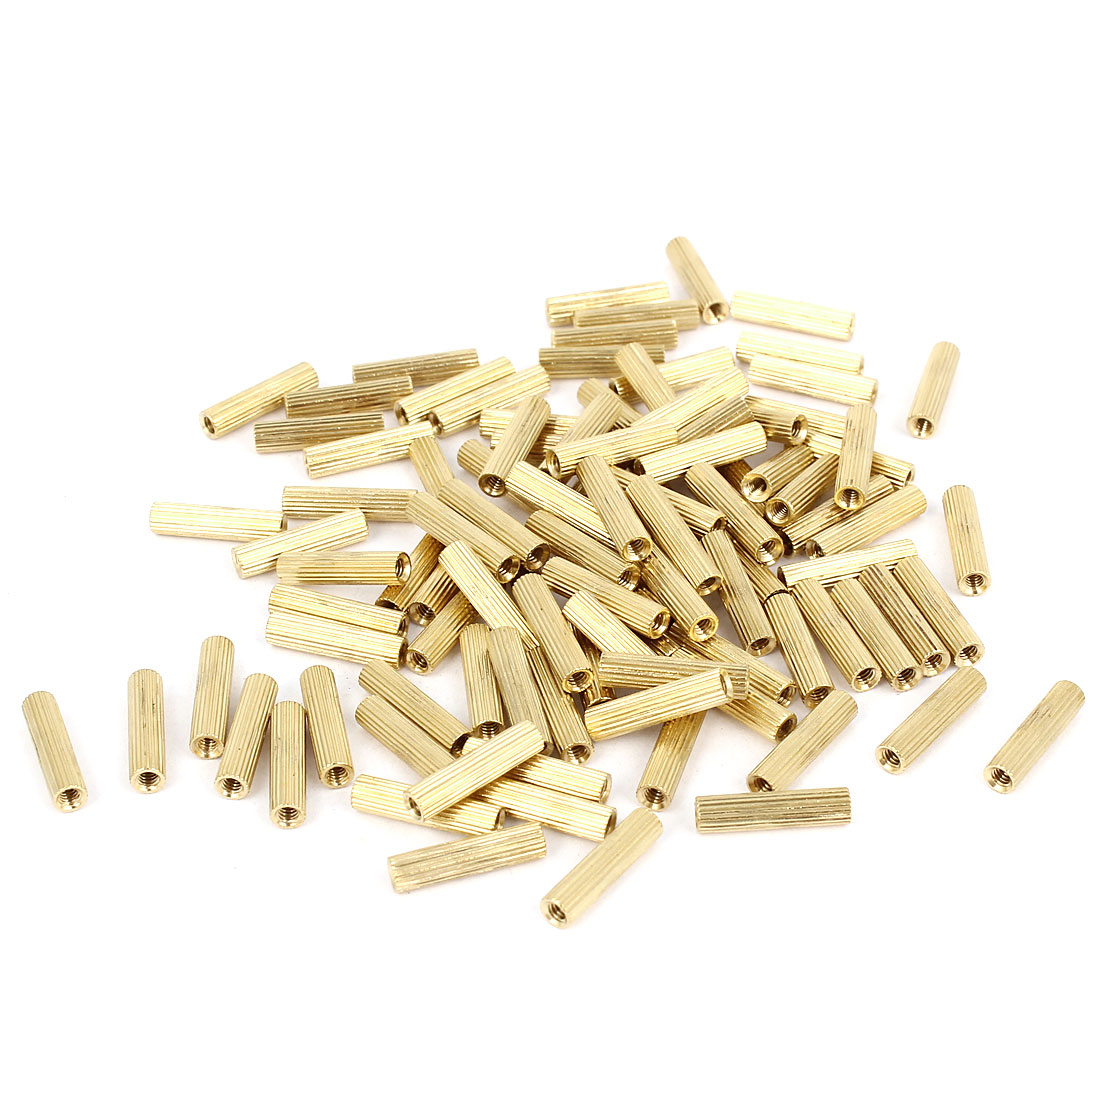 M2x13mm Cylinder Female Threaded Brass Standoff Spacer Pillars 100 Pcs